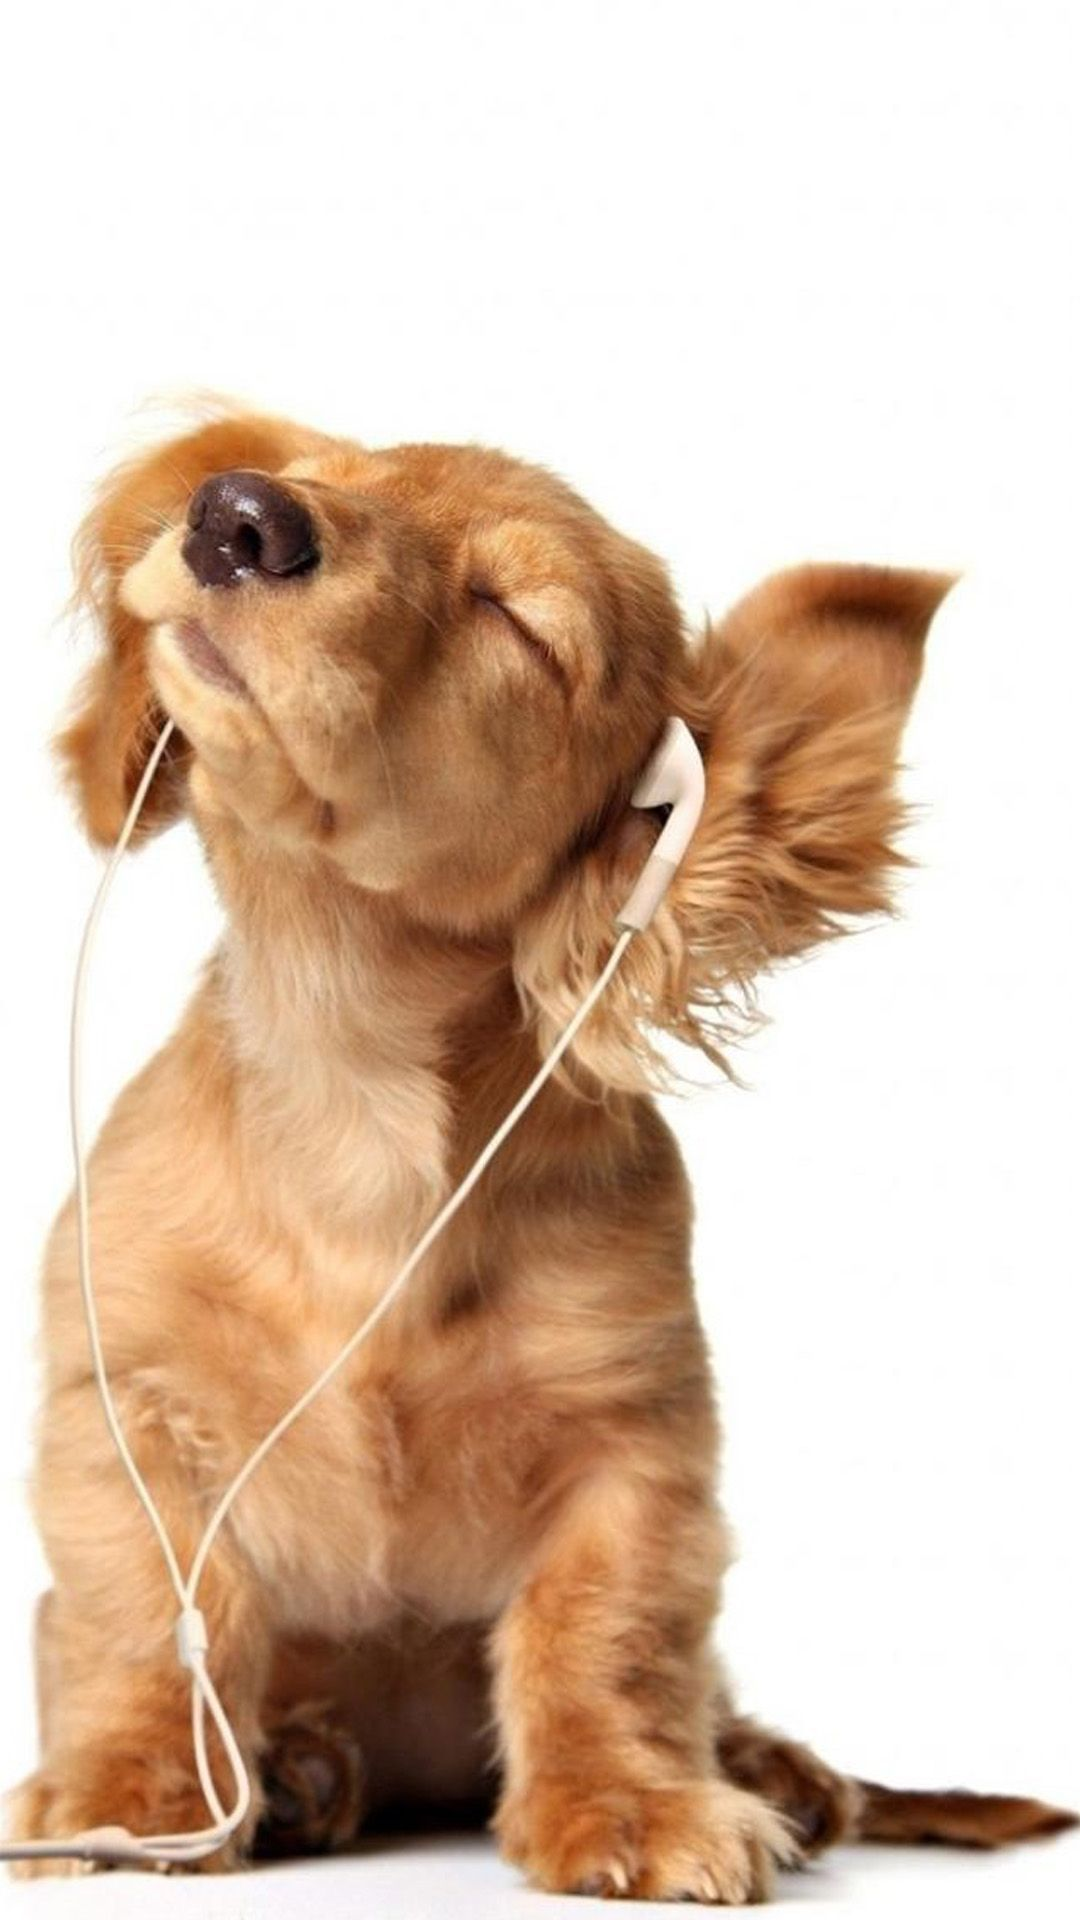 Our pets listen to music Puppy dog pictures, Cute dog